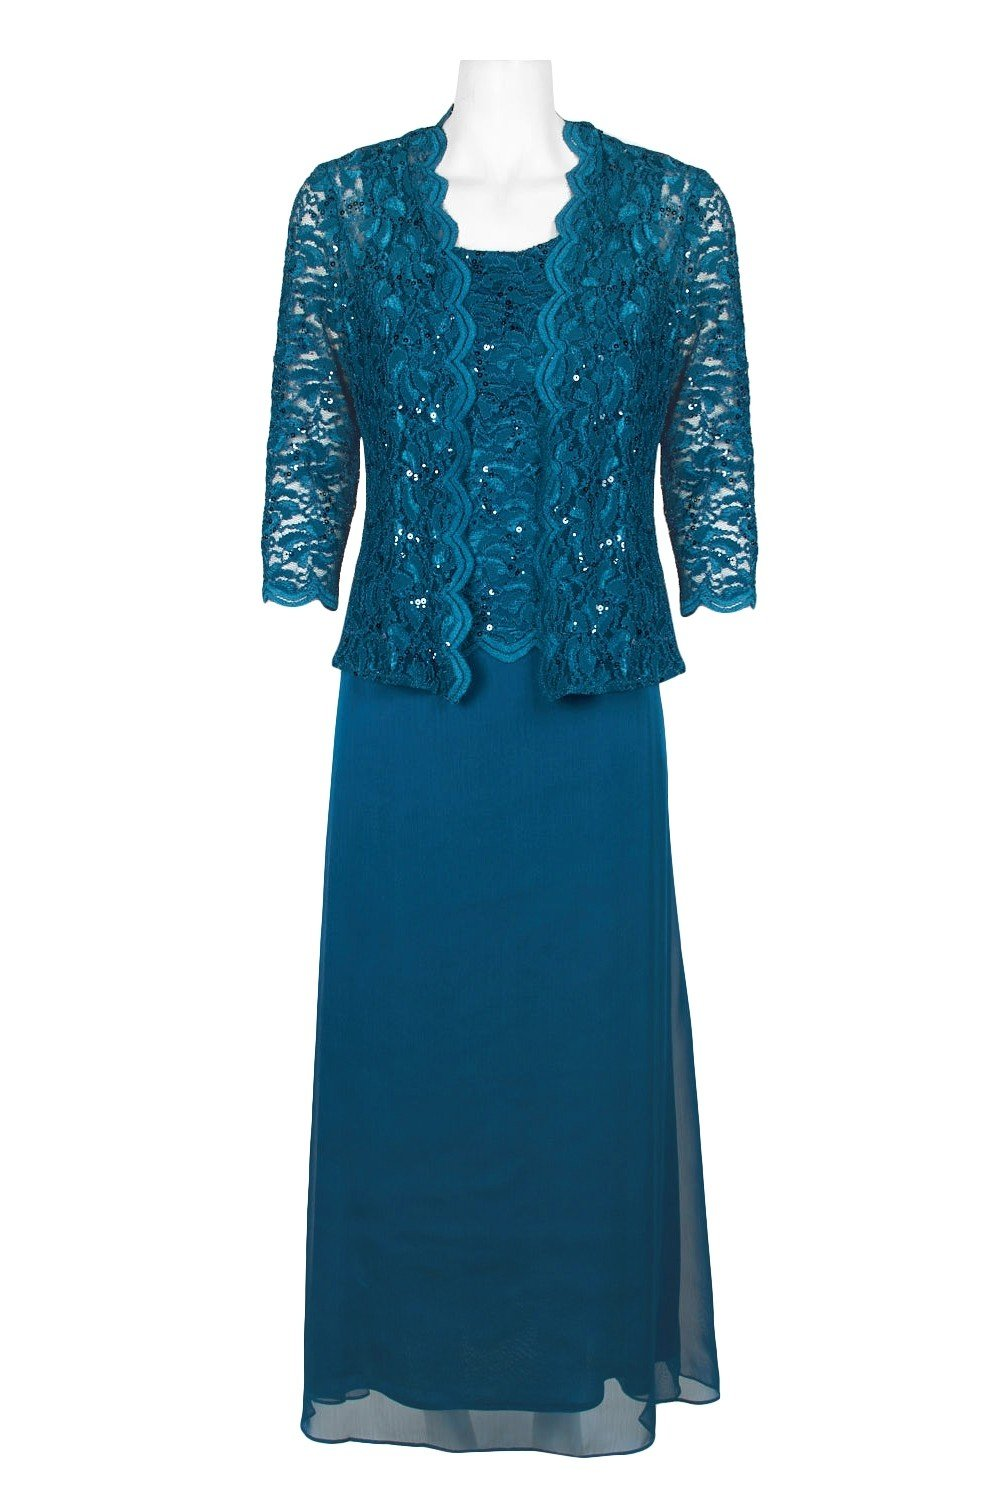 Alex Evenings - 81122131 Two-Piece Sequined Lace Dress with Jacket In Blue